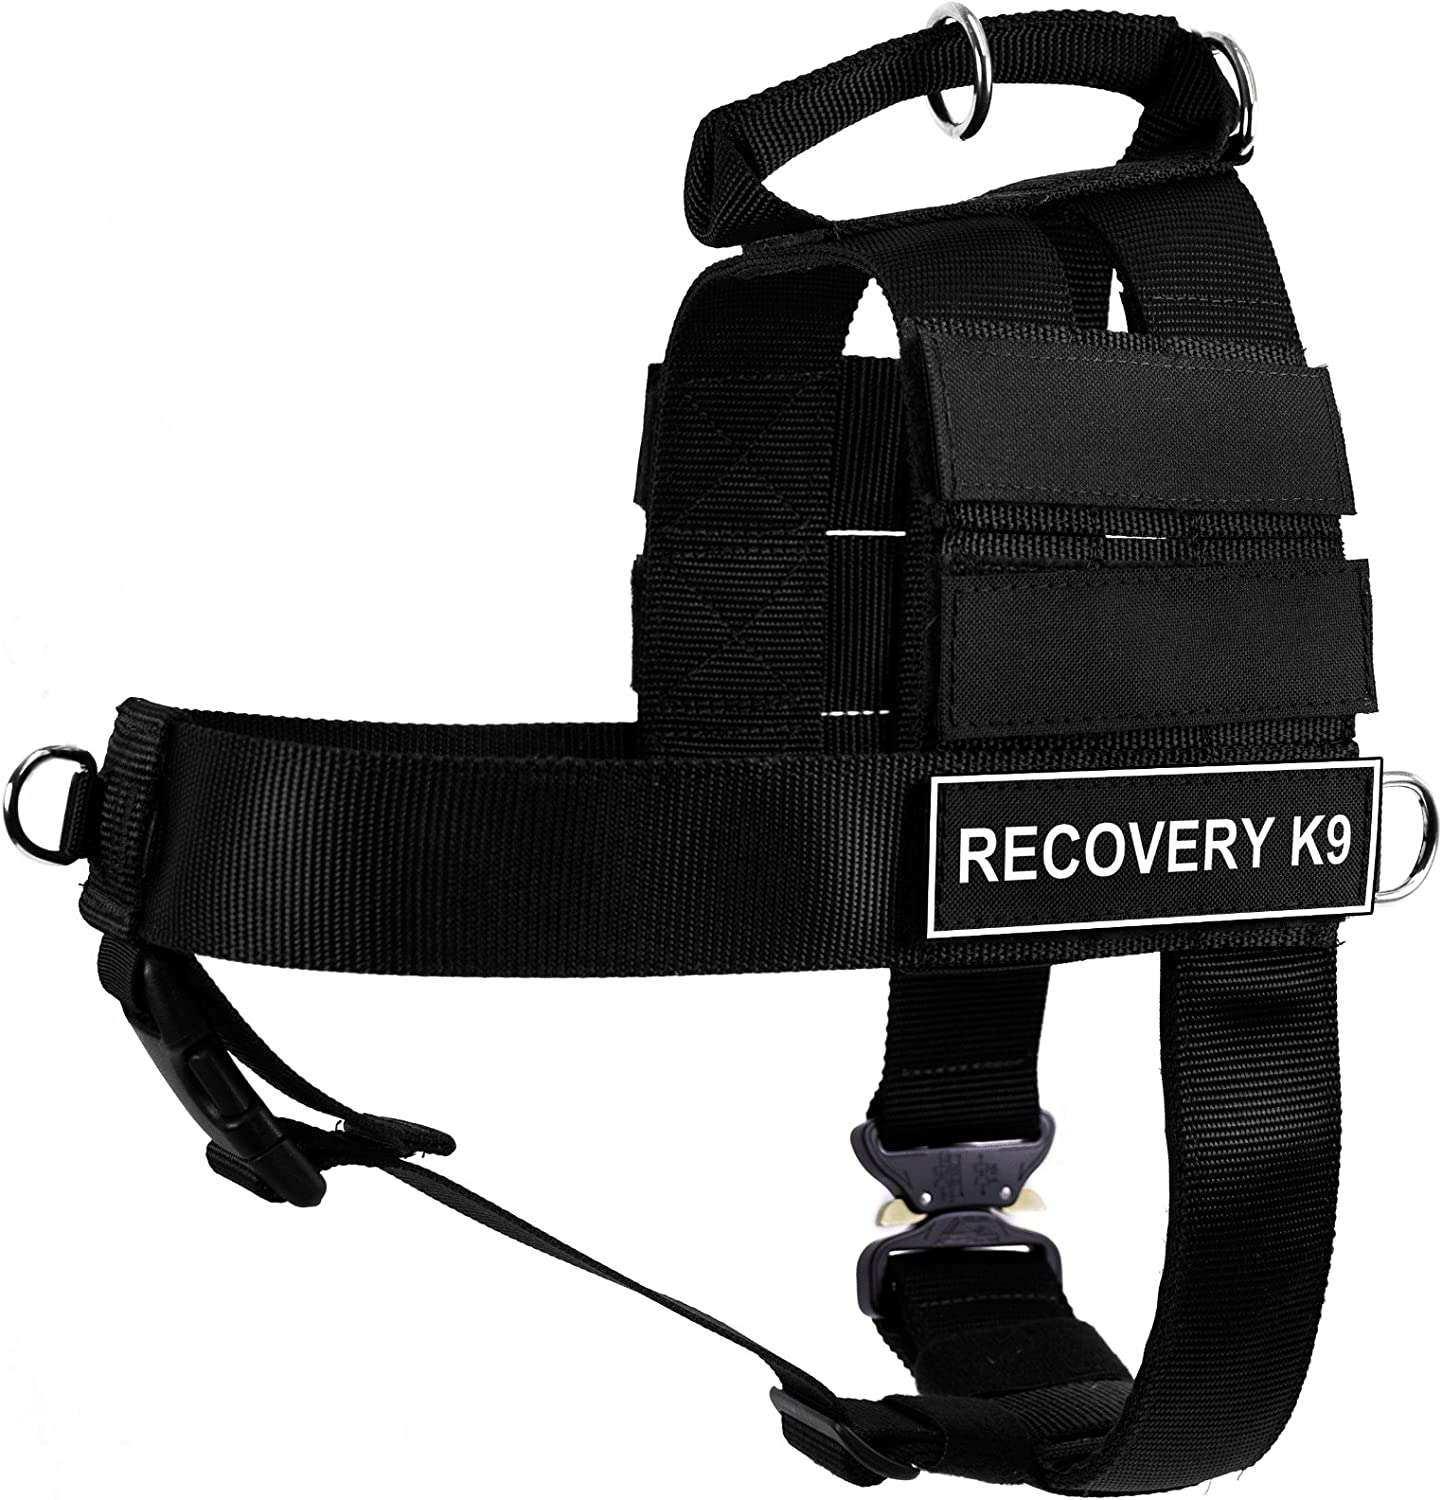 Dean & Tyler DT Cobra Recovery K9 No Pull Harness, Small, Black